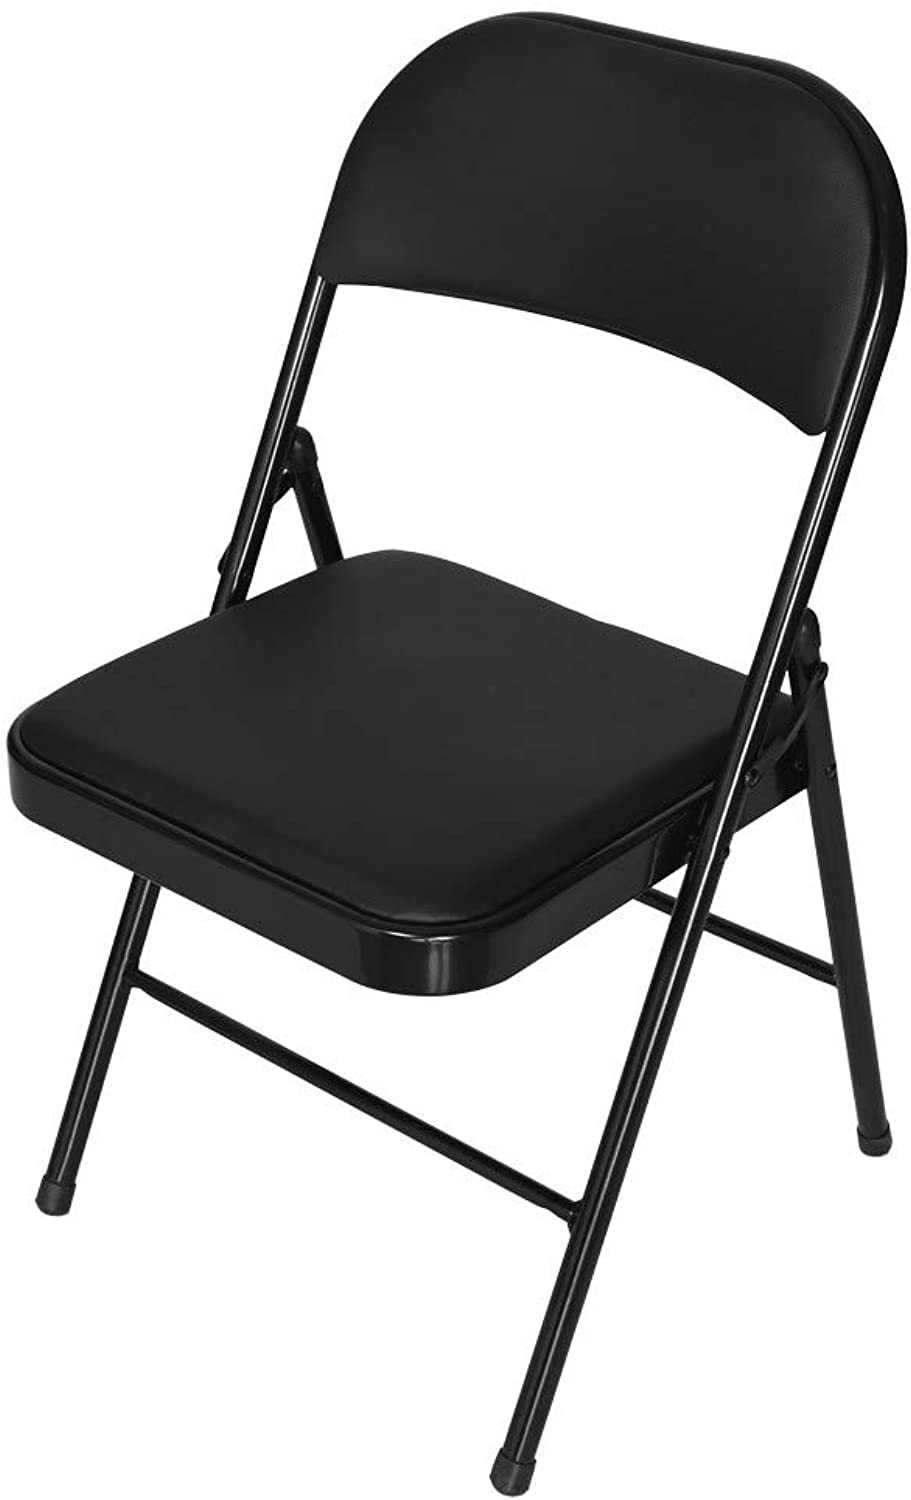 Jiayit US Fast Shipment Multifunctional backrest Folding Chair Casual Office Training Chair 76x45x43cm, Black Steel Plate Base